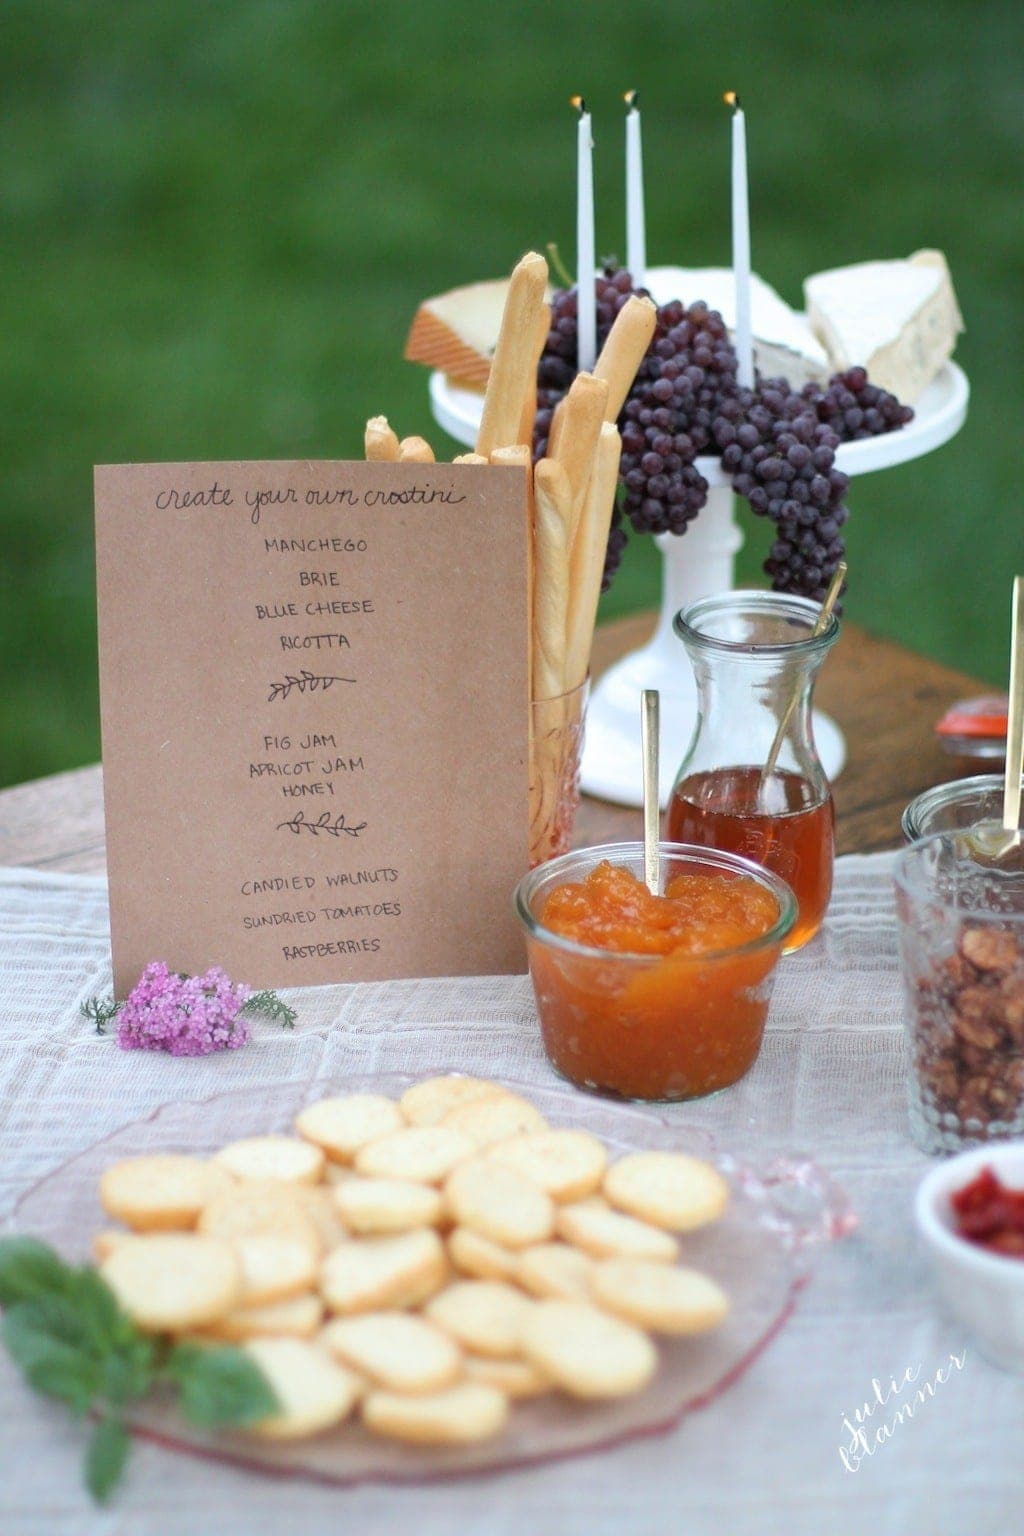 Dinner Party Ideas | set up an hors d'oeuvres bar with edible decor